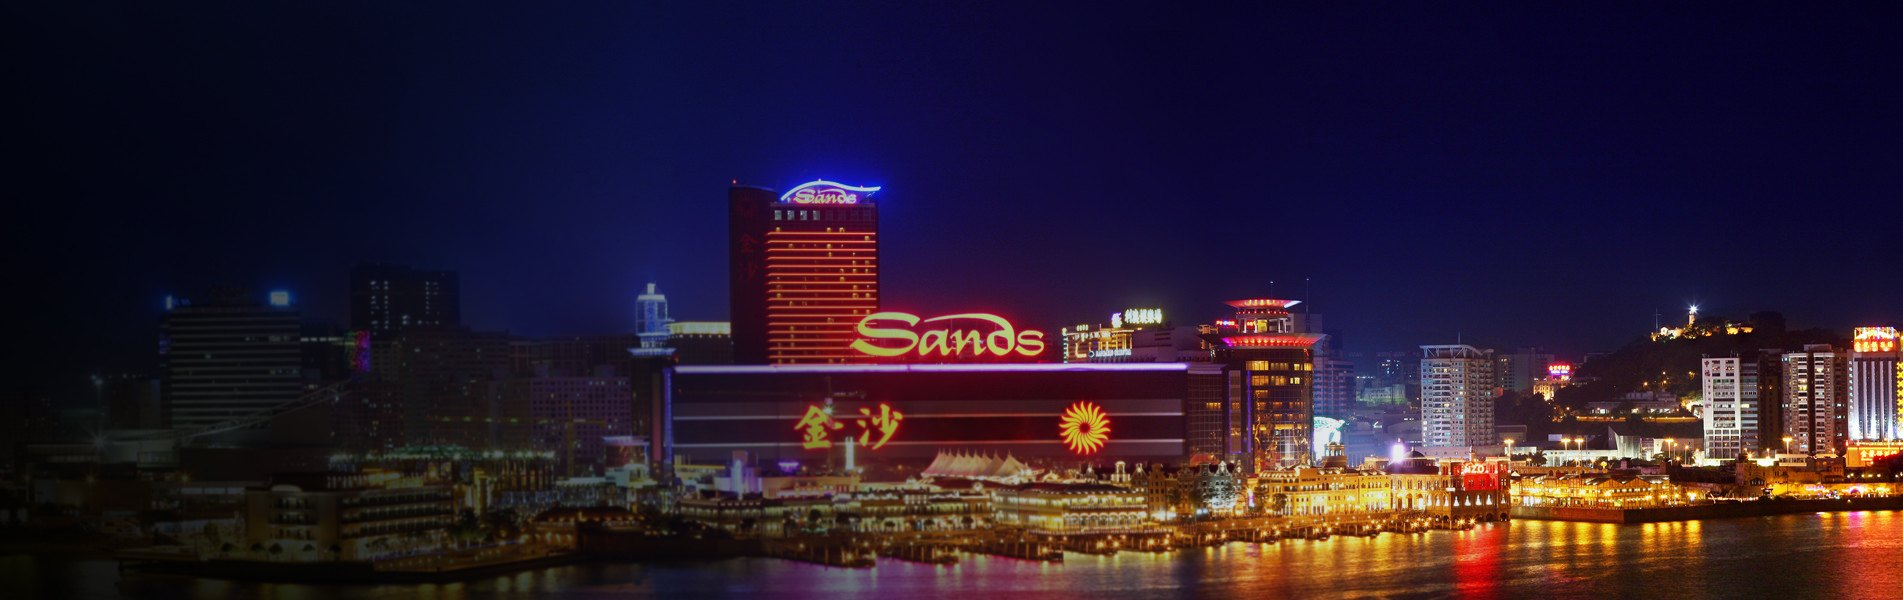 Sands Macao Casino 1